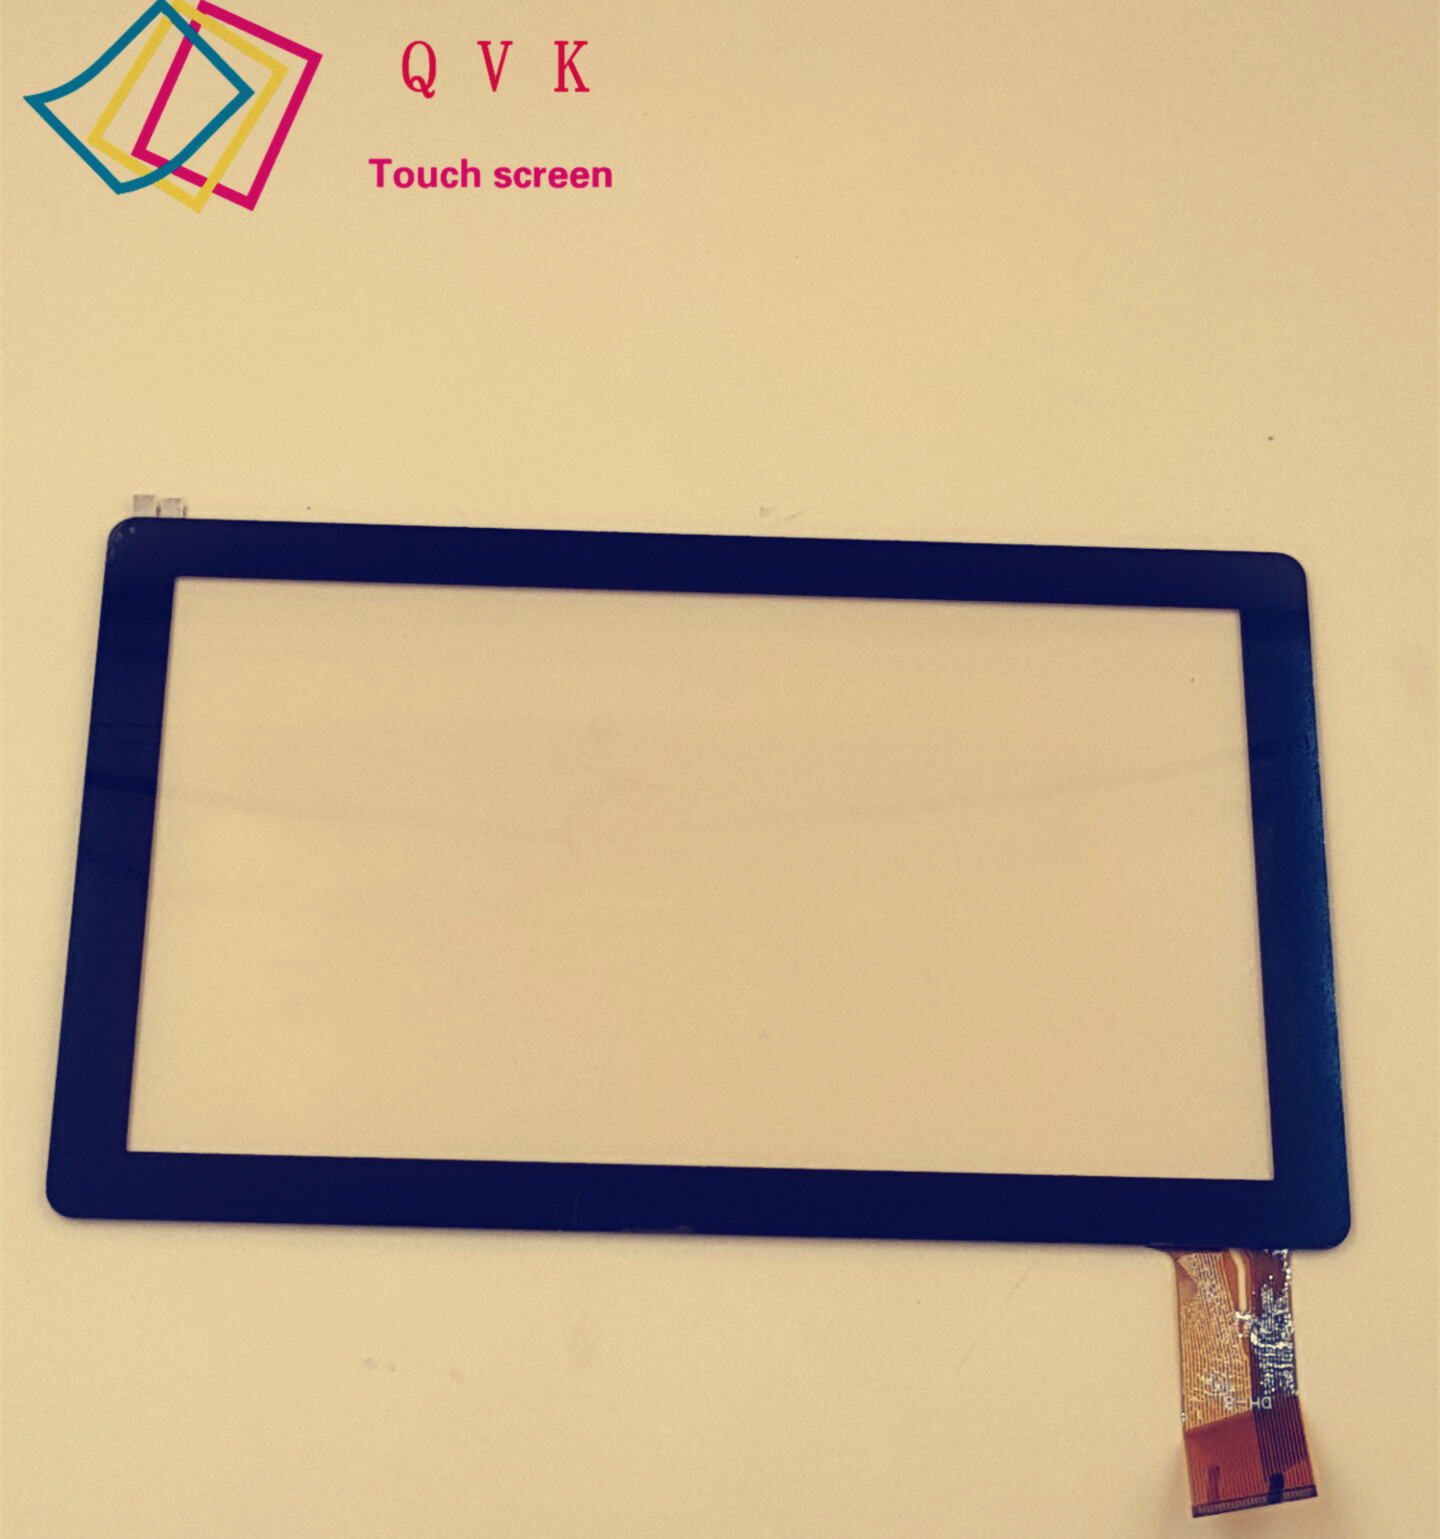 7inch a13 a10 capacitor handwritten touch screen for A13 X5 Q88 Q8 MIDA czy6075a-fpc noting size and color